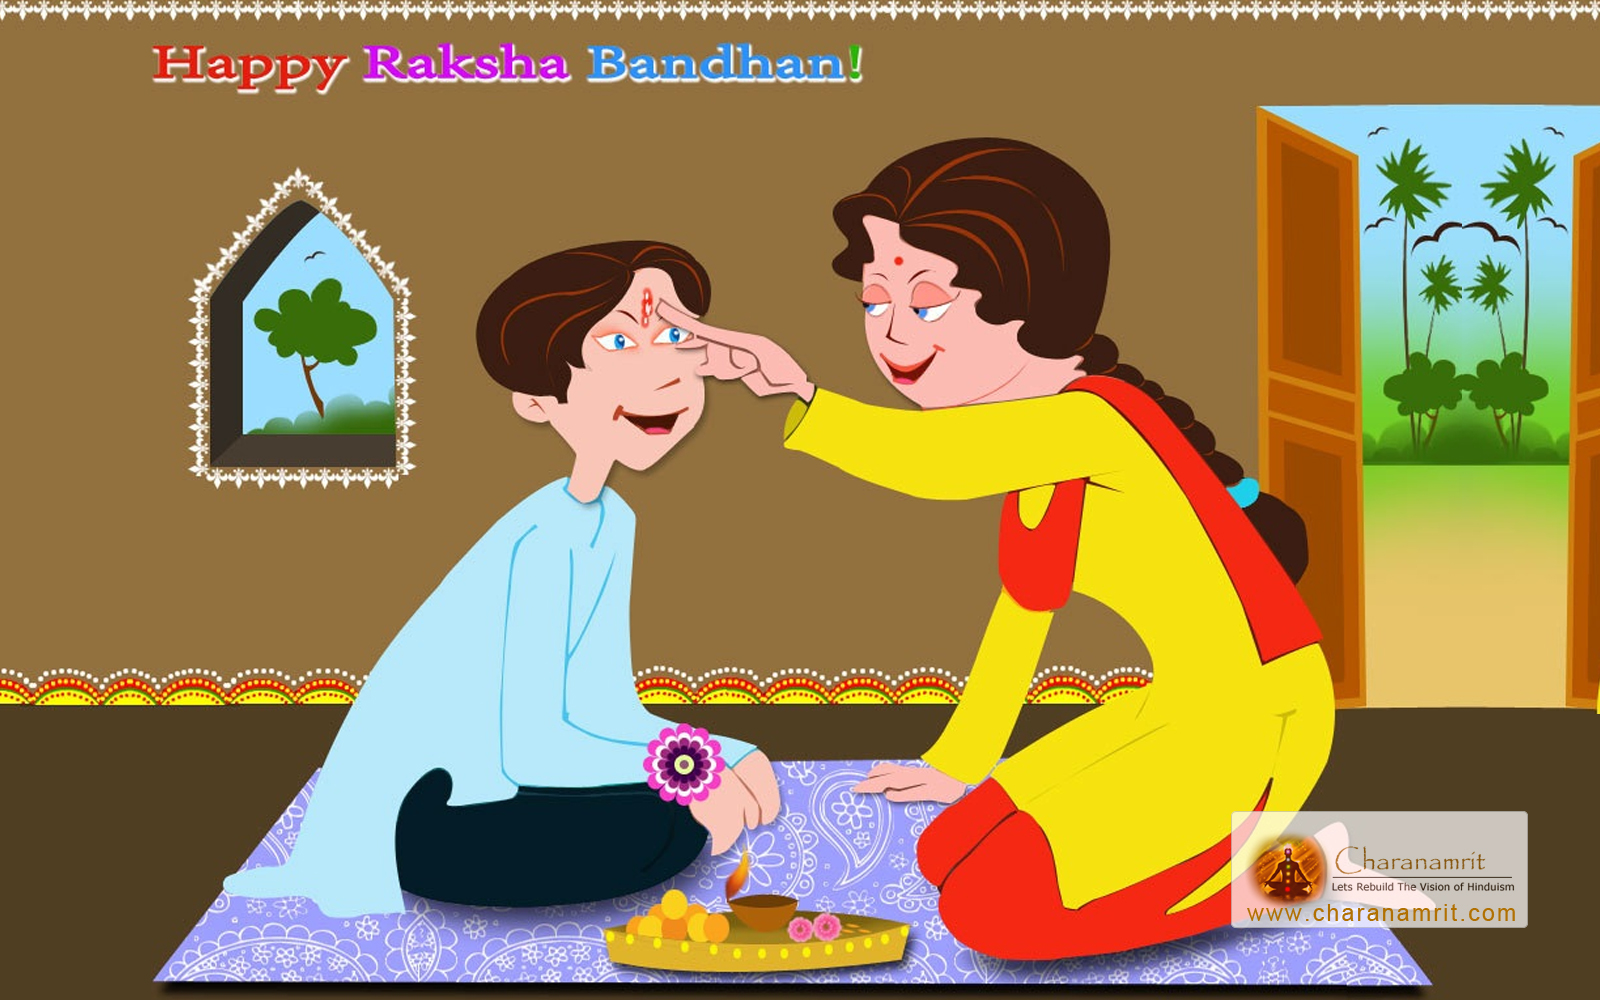 Happy Raksha Bandhan Rakhi HD Images & Wallpapers - Free Download